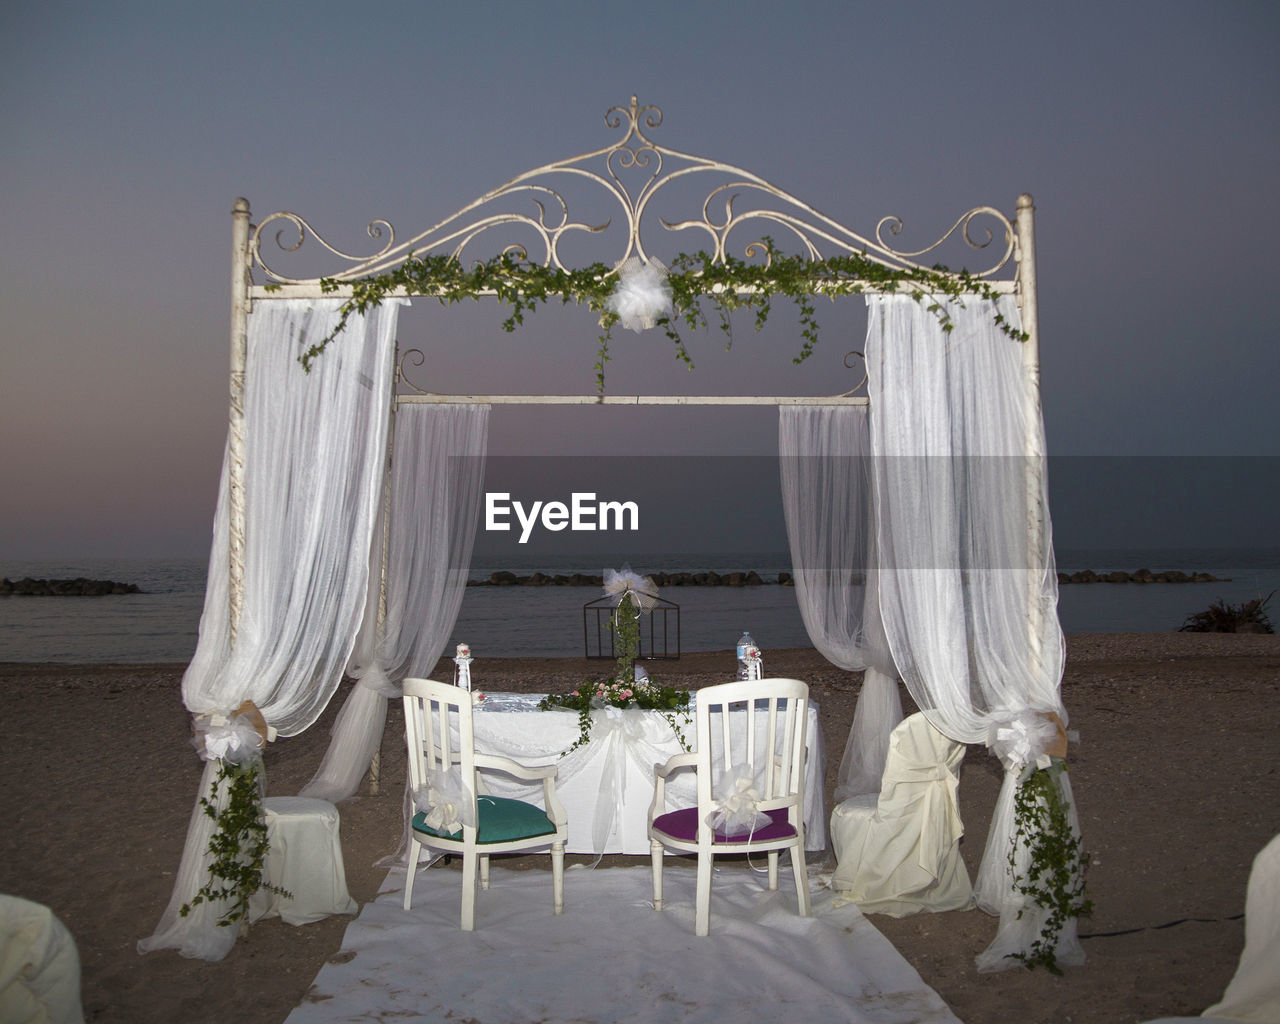 seat, chair, table, white color, nature, curtain, decoration, sky, no people, wedding, absence, tablecloth, event, setting, celebration, place setting, plant, furniture, beach, water, outdoors, wedding ceremony, luxury